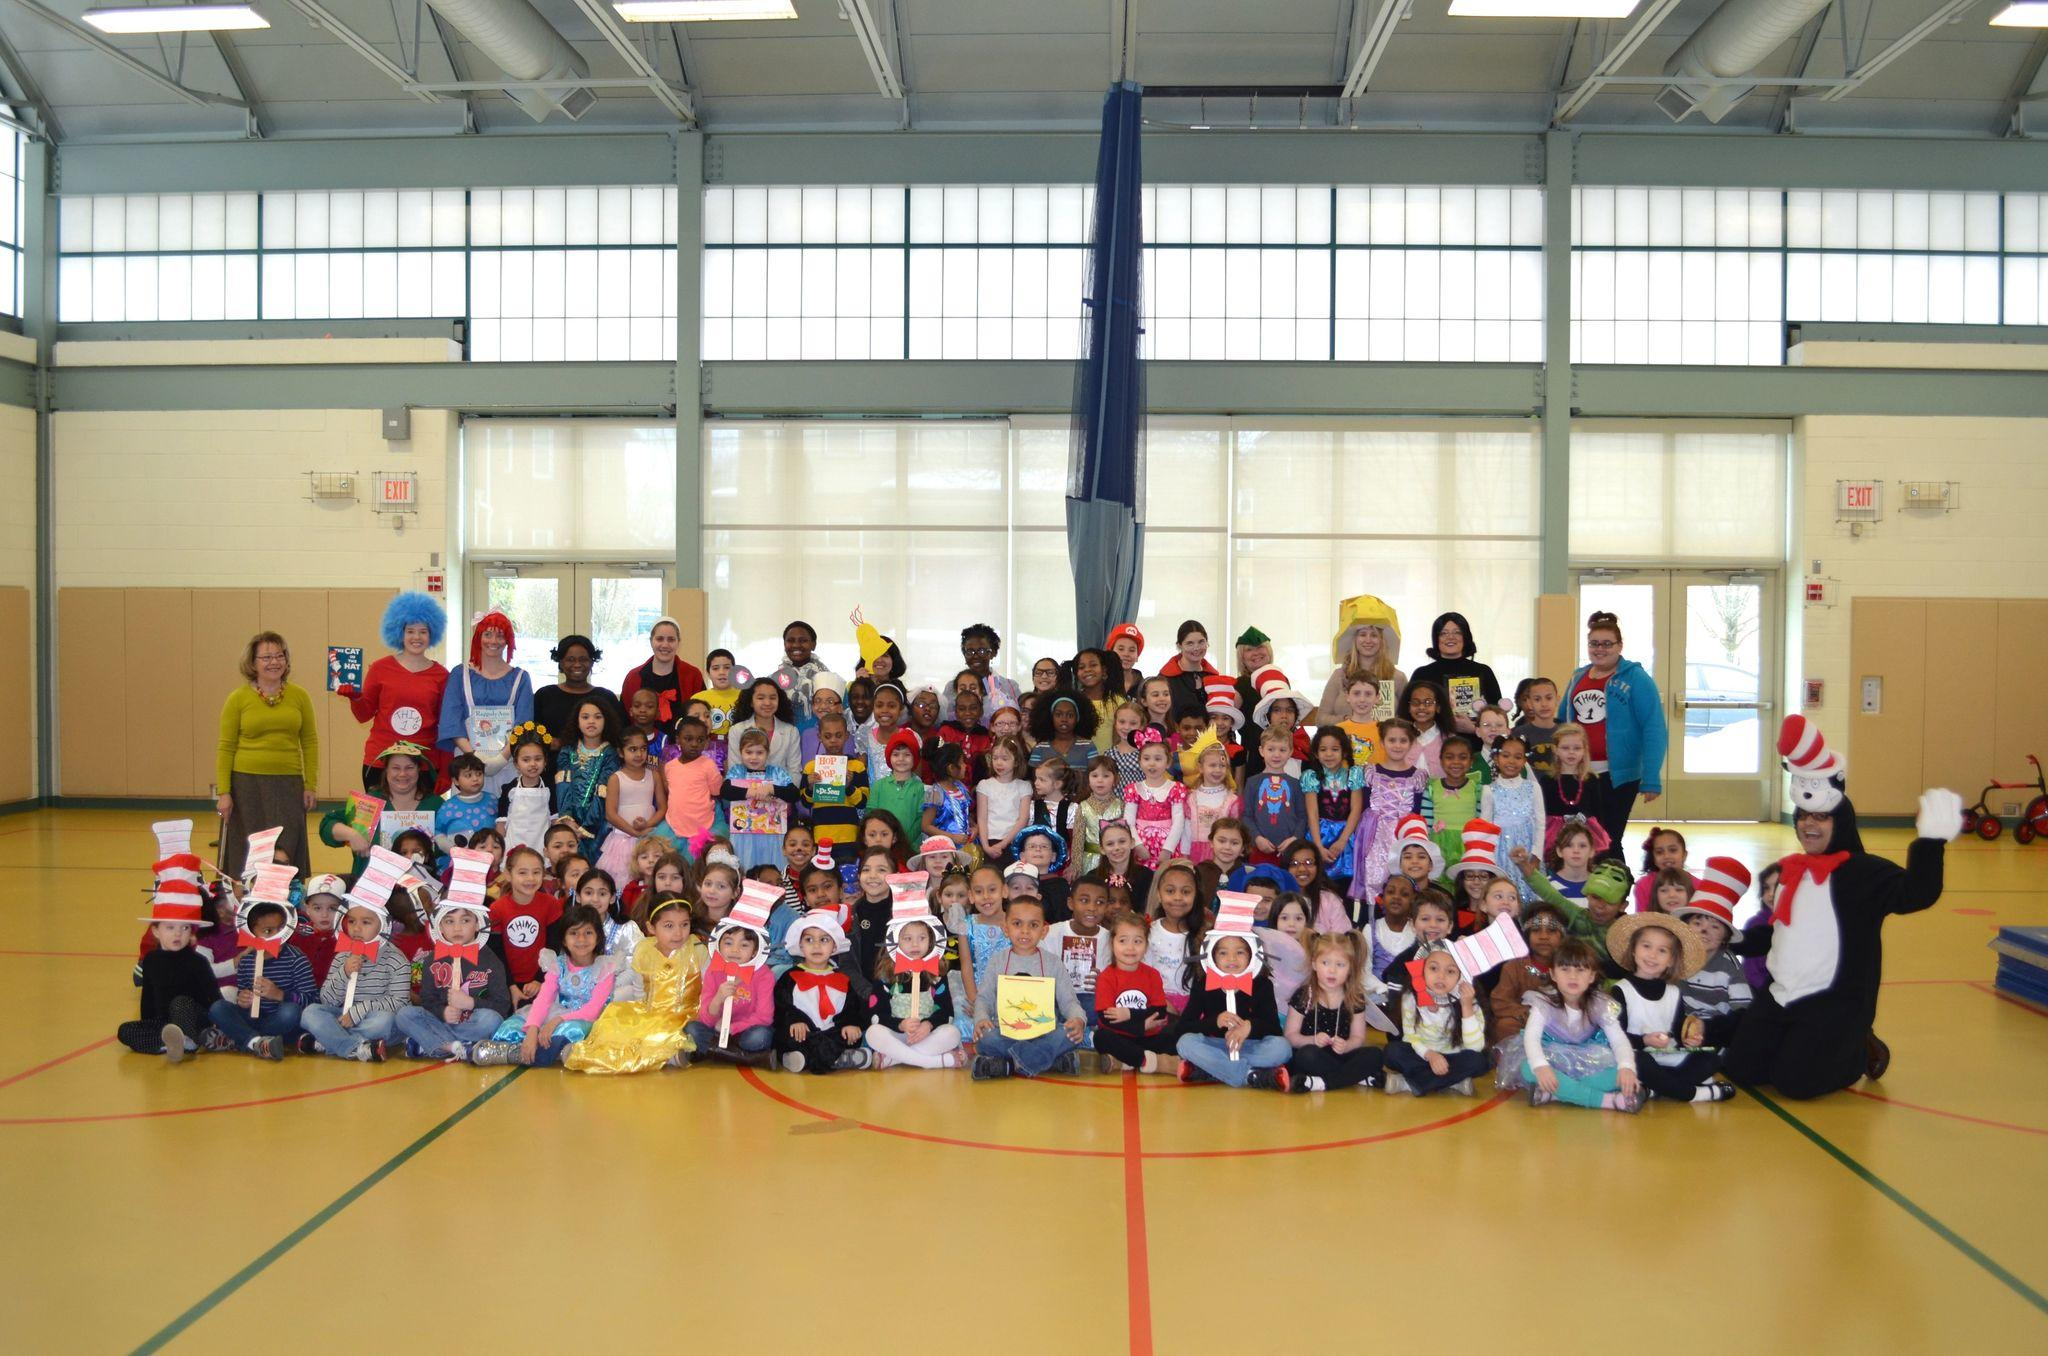 Students and staff of the CREC Montessori Magnet School show off their costumes for Read Across America Day.